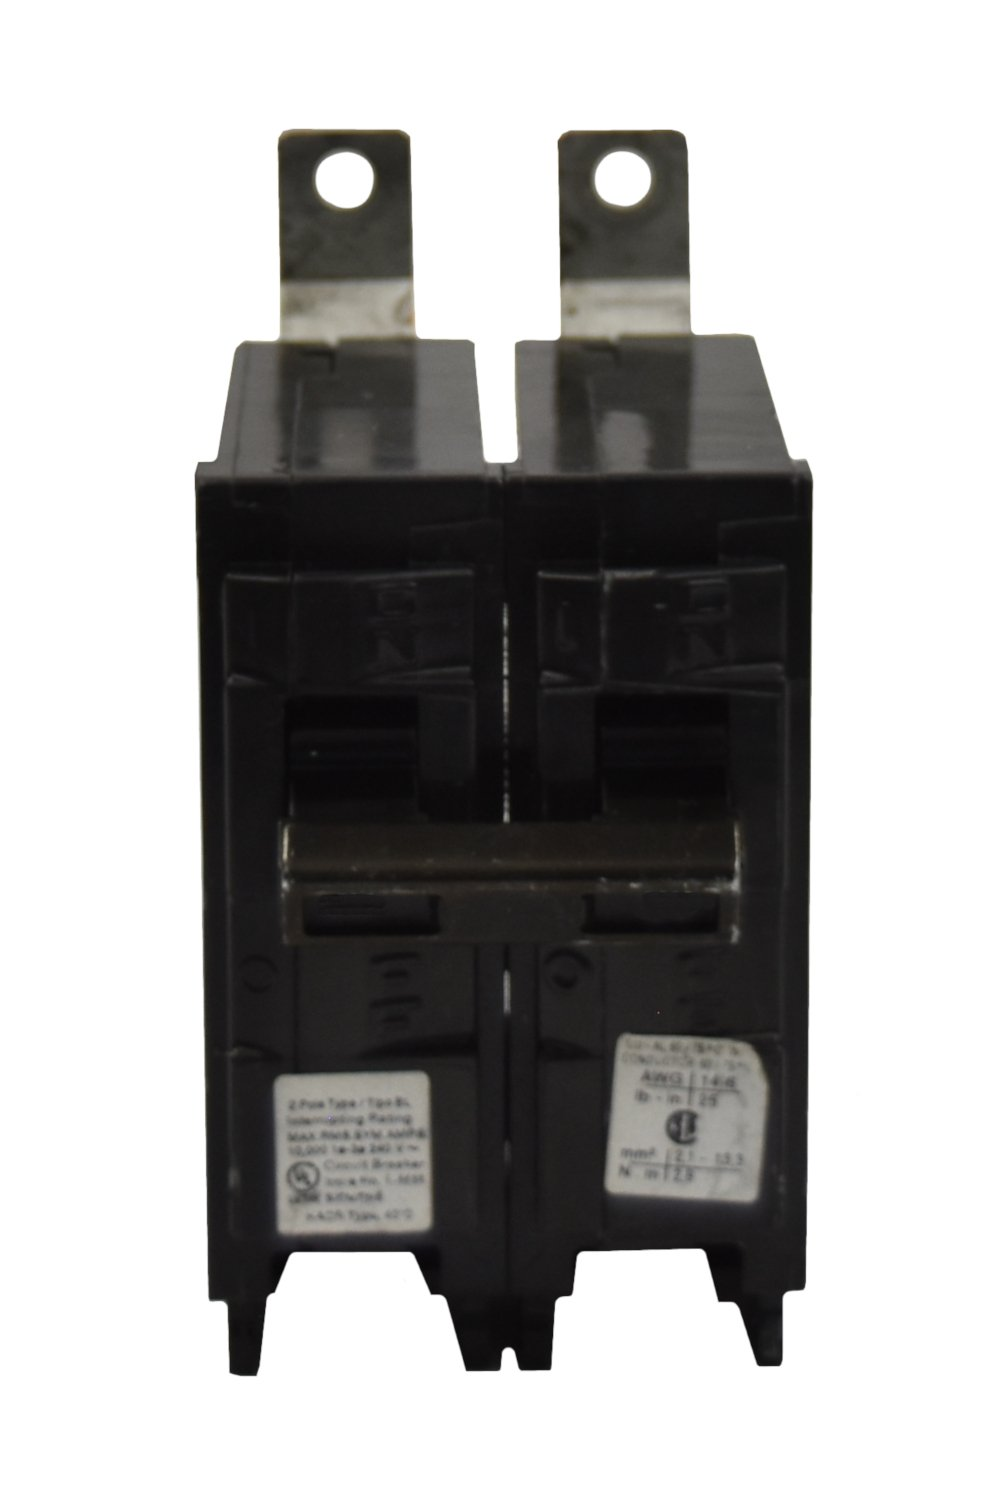 Siemens B235R Circuit Breakers